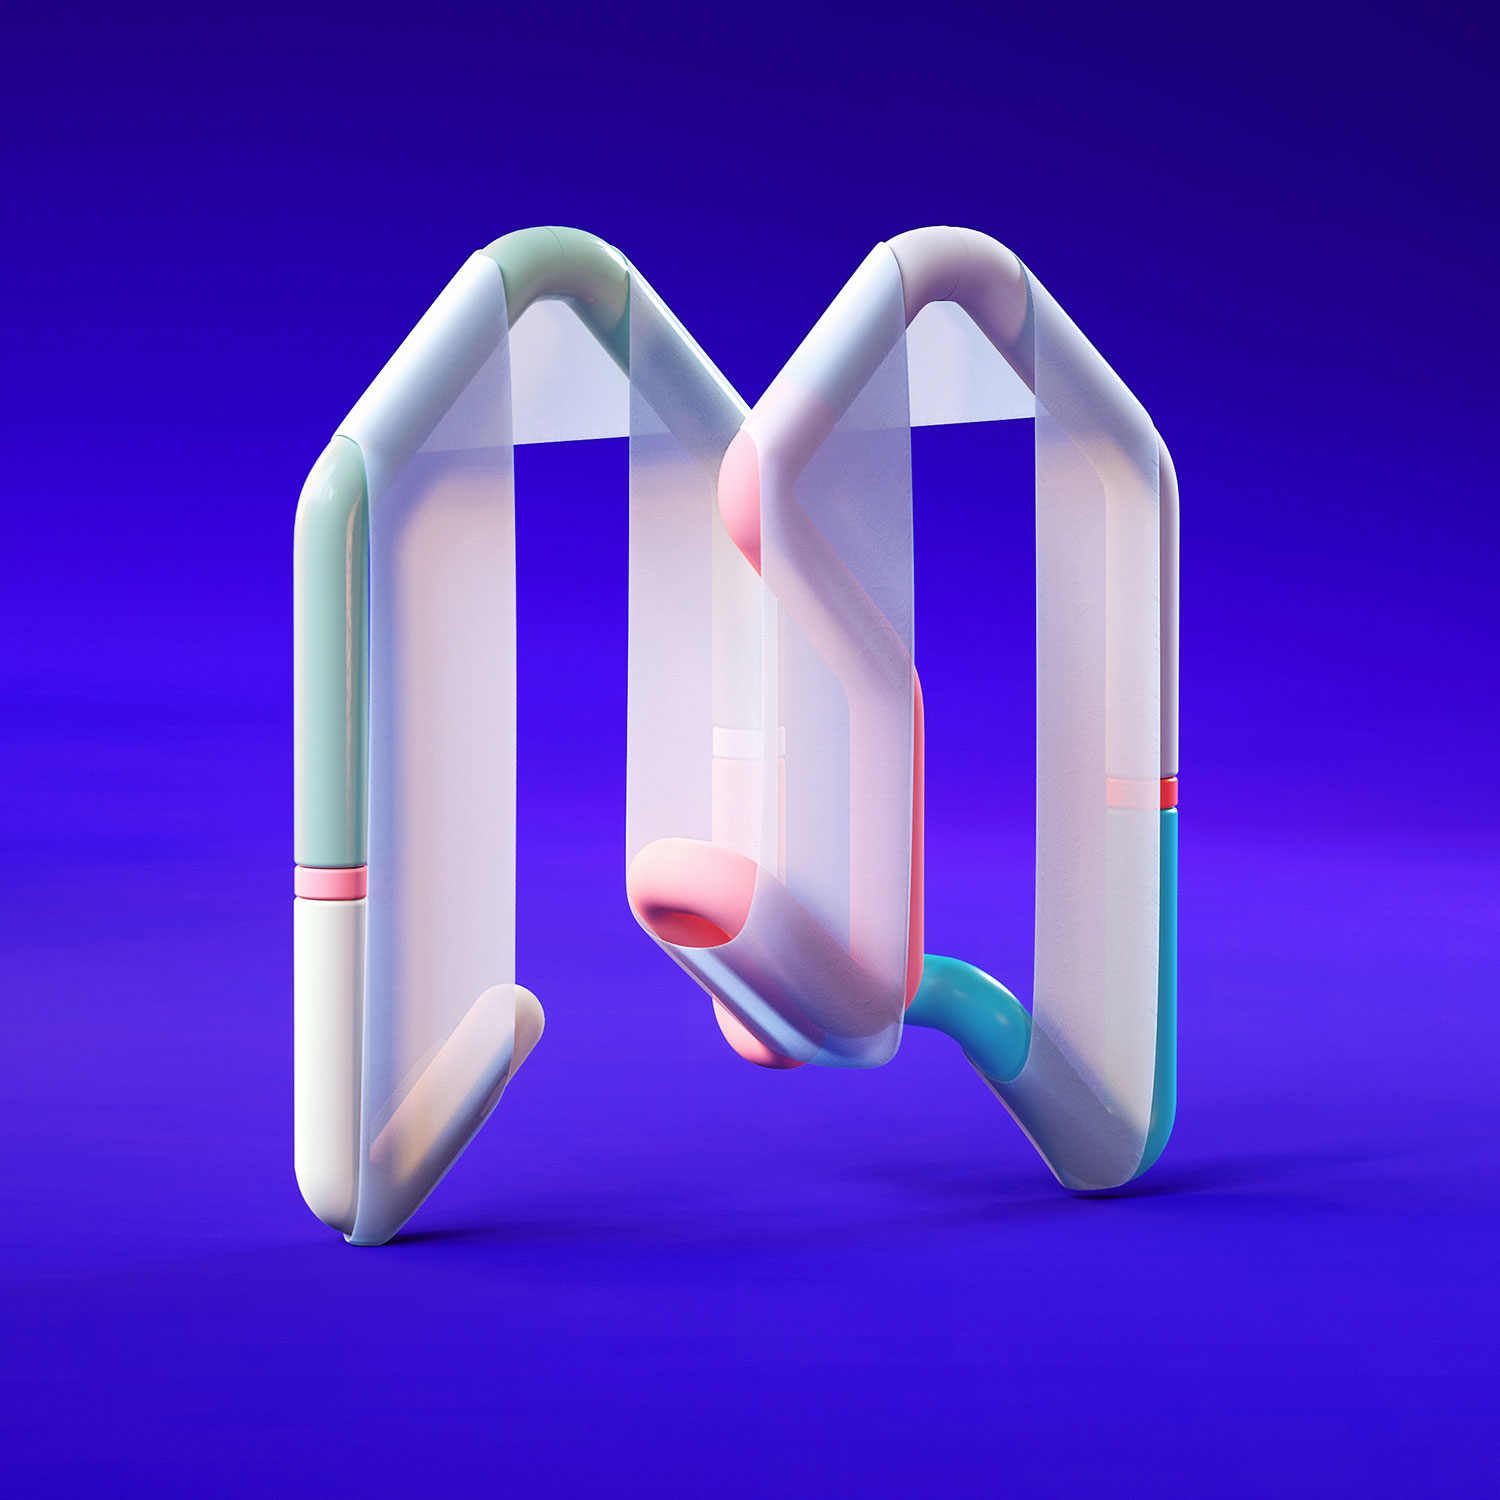 36 Days of Type 2018 - 3D letter M visual.